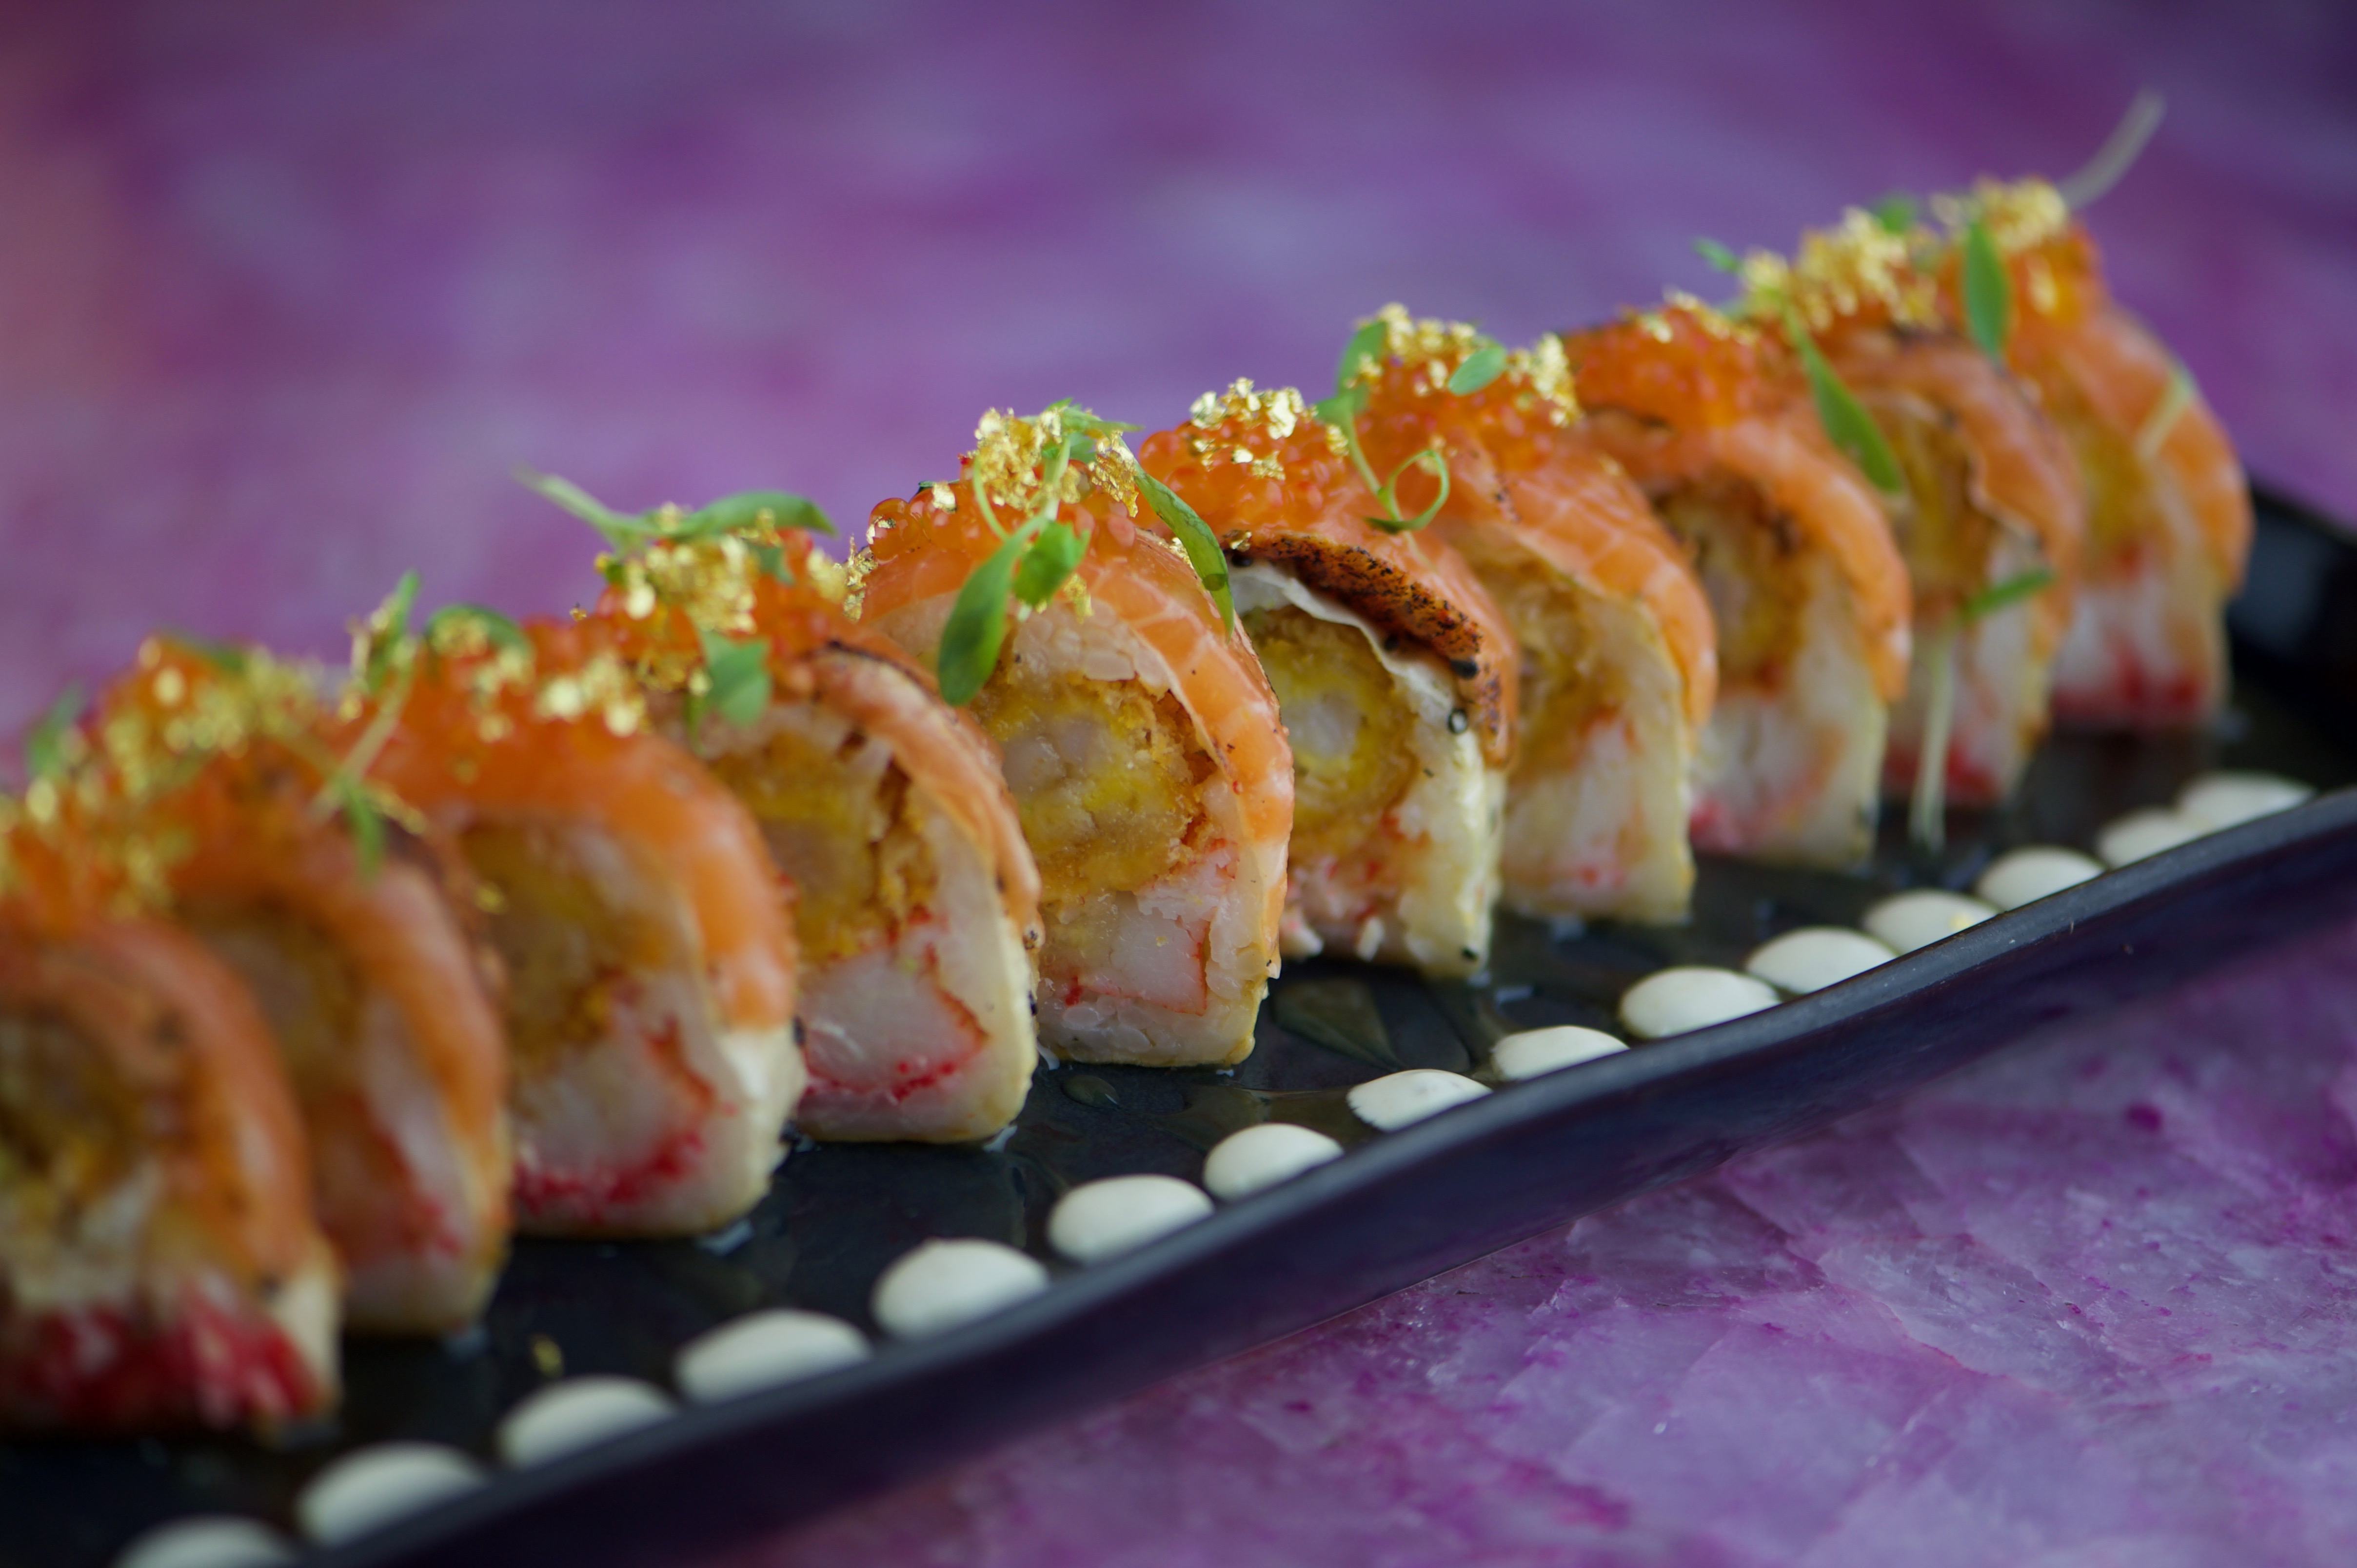 image of sushi roll